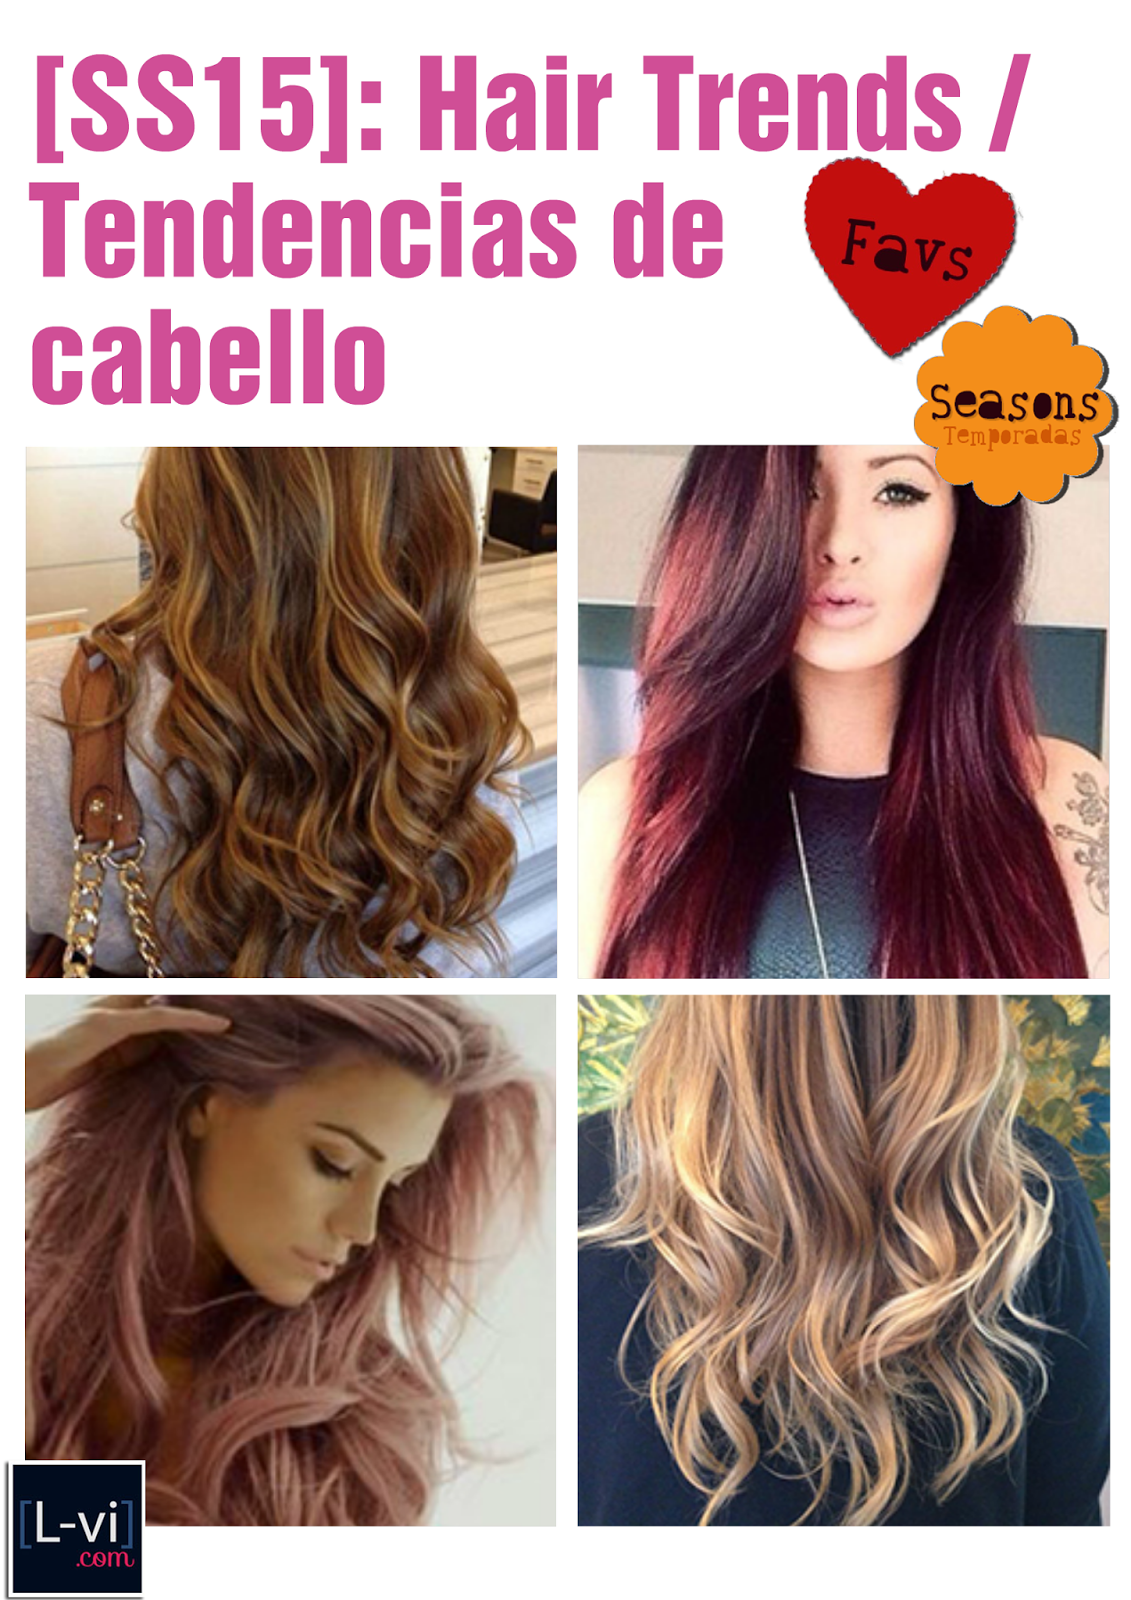 [SS15] Hair trends / Tendencias de cabello para ellas  L-vi.com